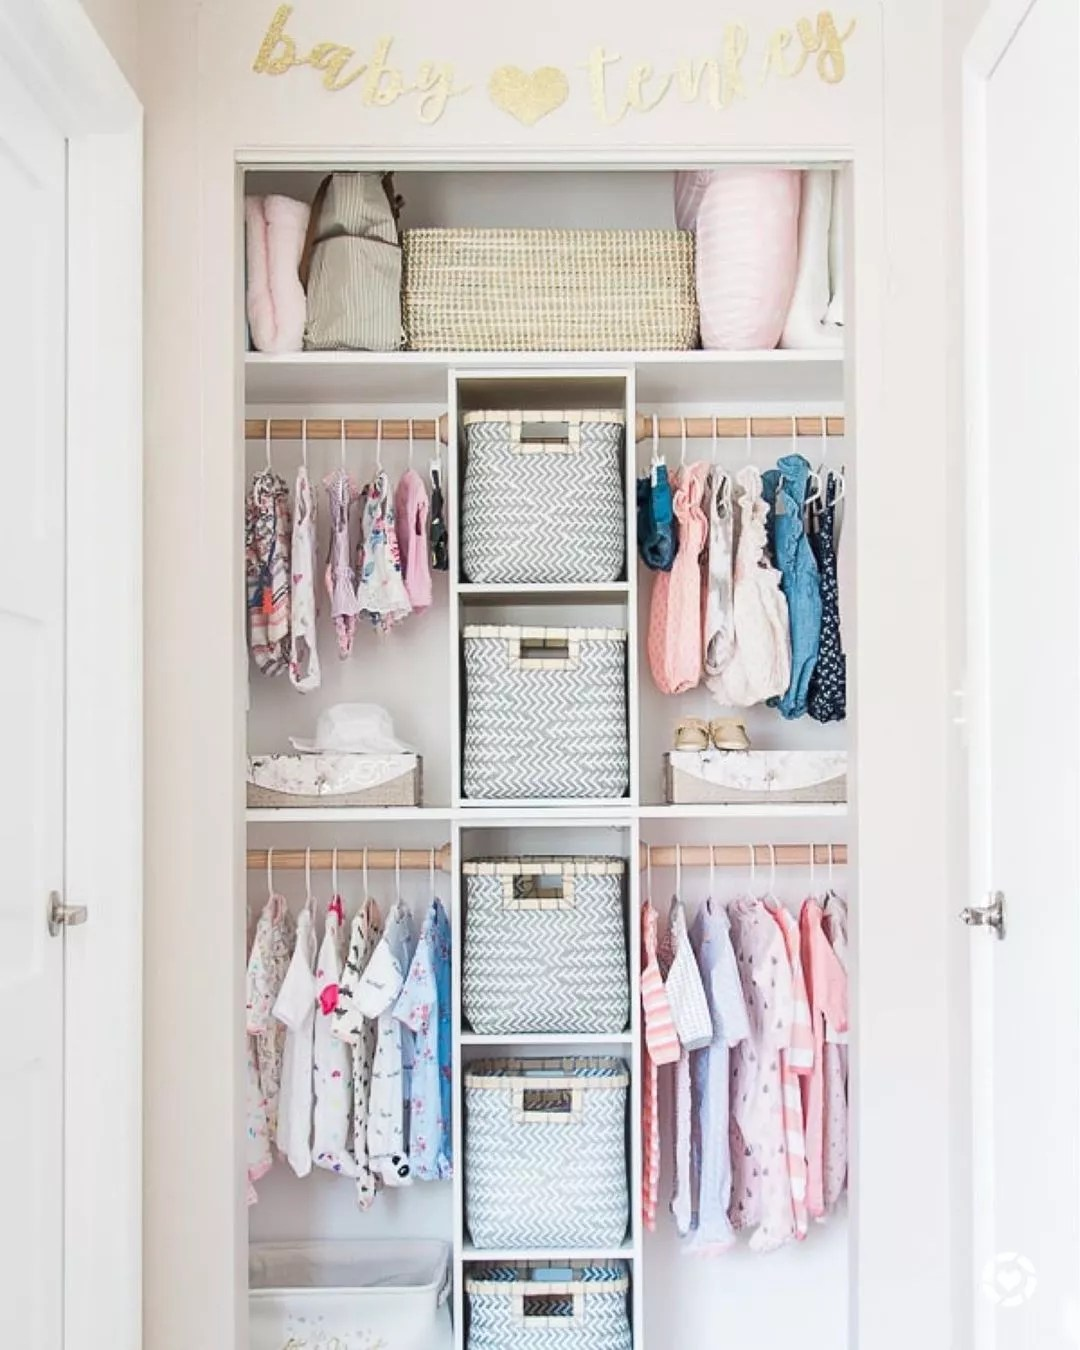 Baby closet with baskets. Photo by Instagram user @thegreenspringhome